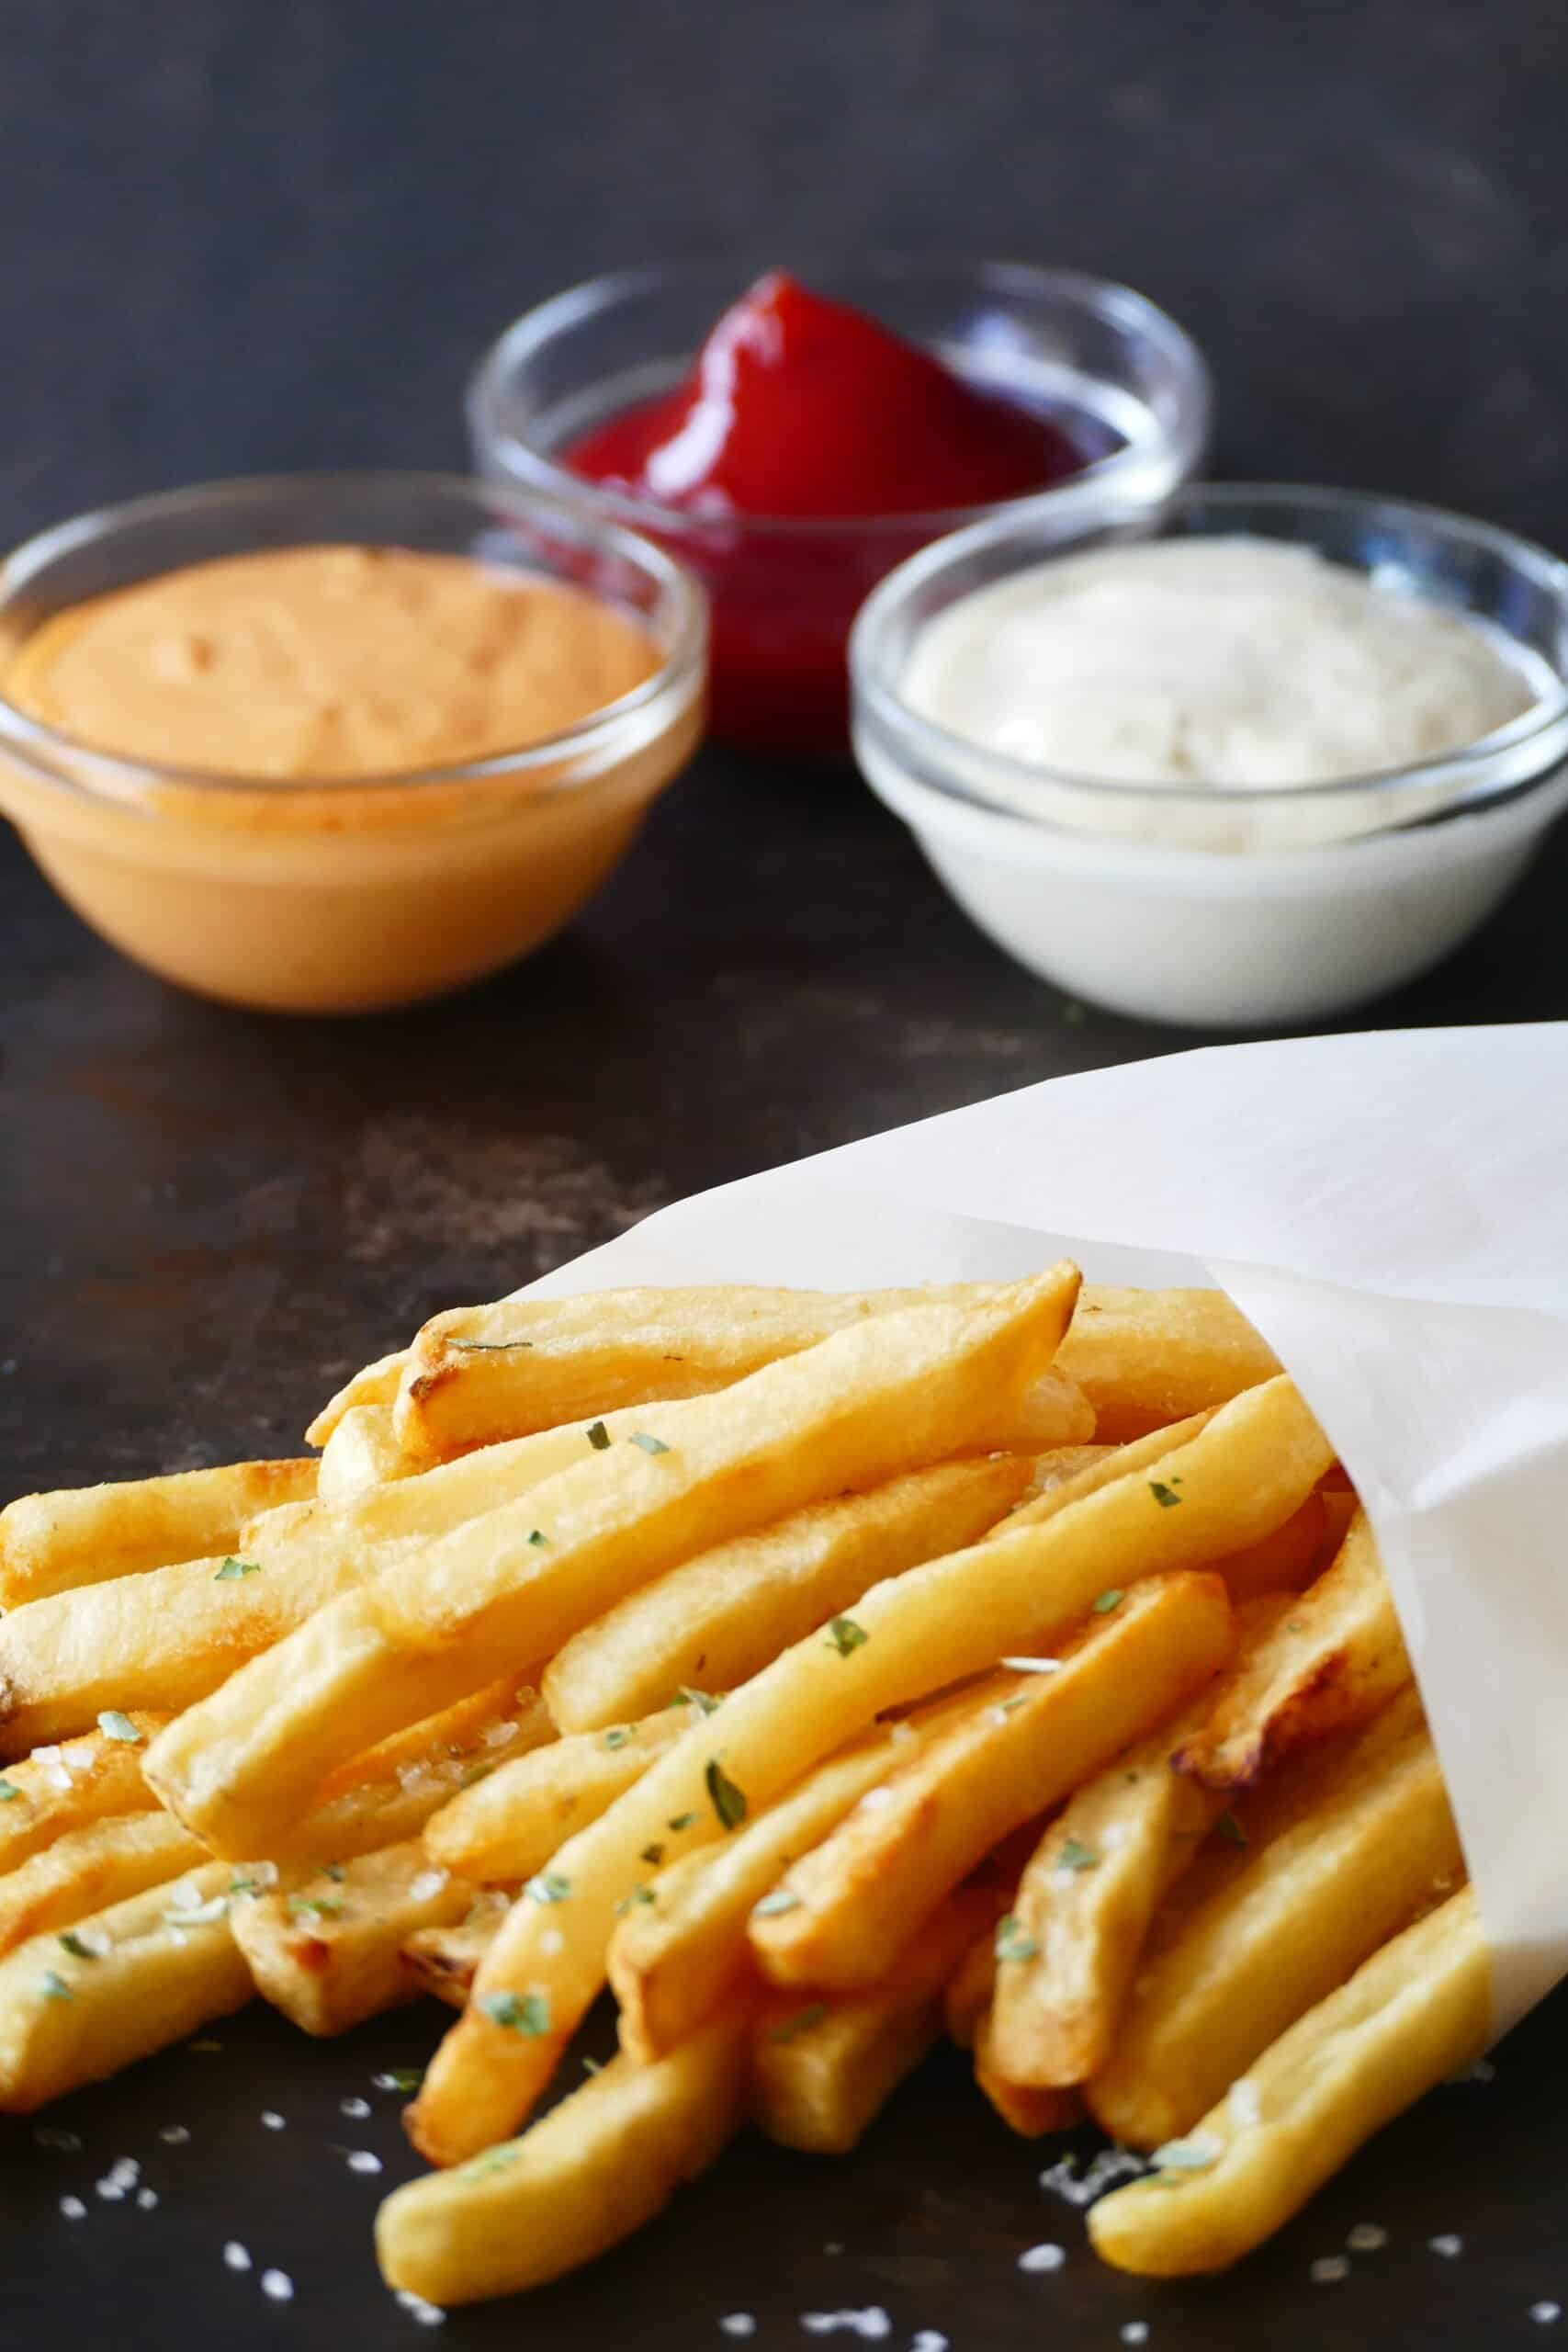 French fries with sea salt and parsley wrapped in white parchment and three glass bowls with condiments